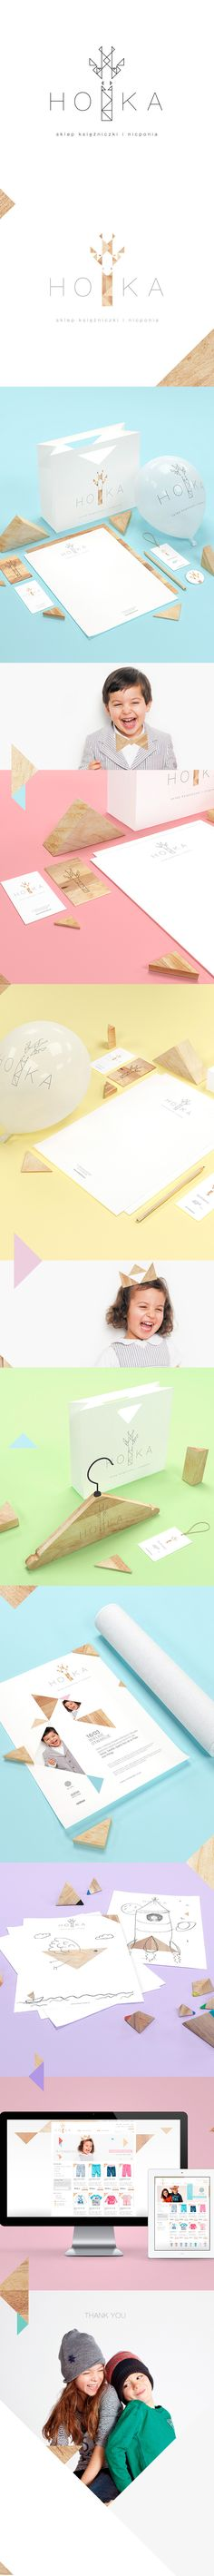 HOKA clothes for children by Joanna Namyślak, via Behance #identity #packaging #branding PD